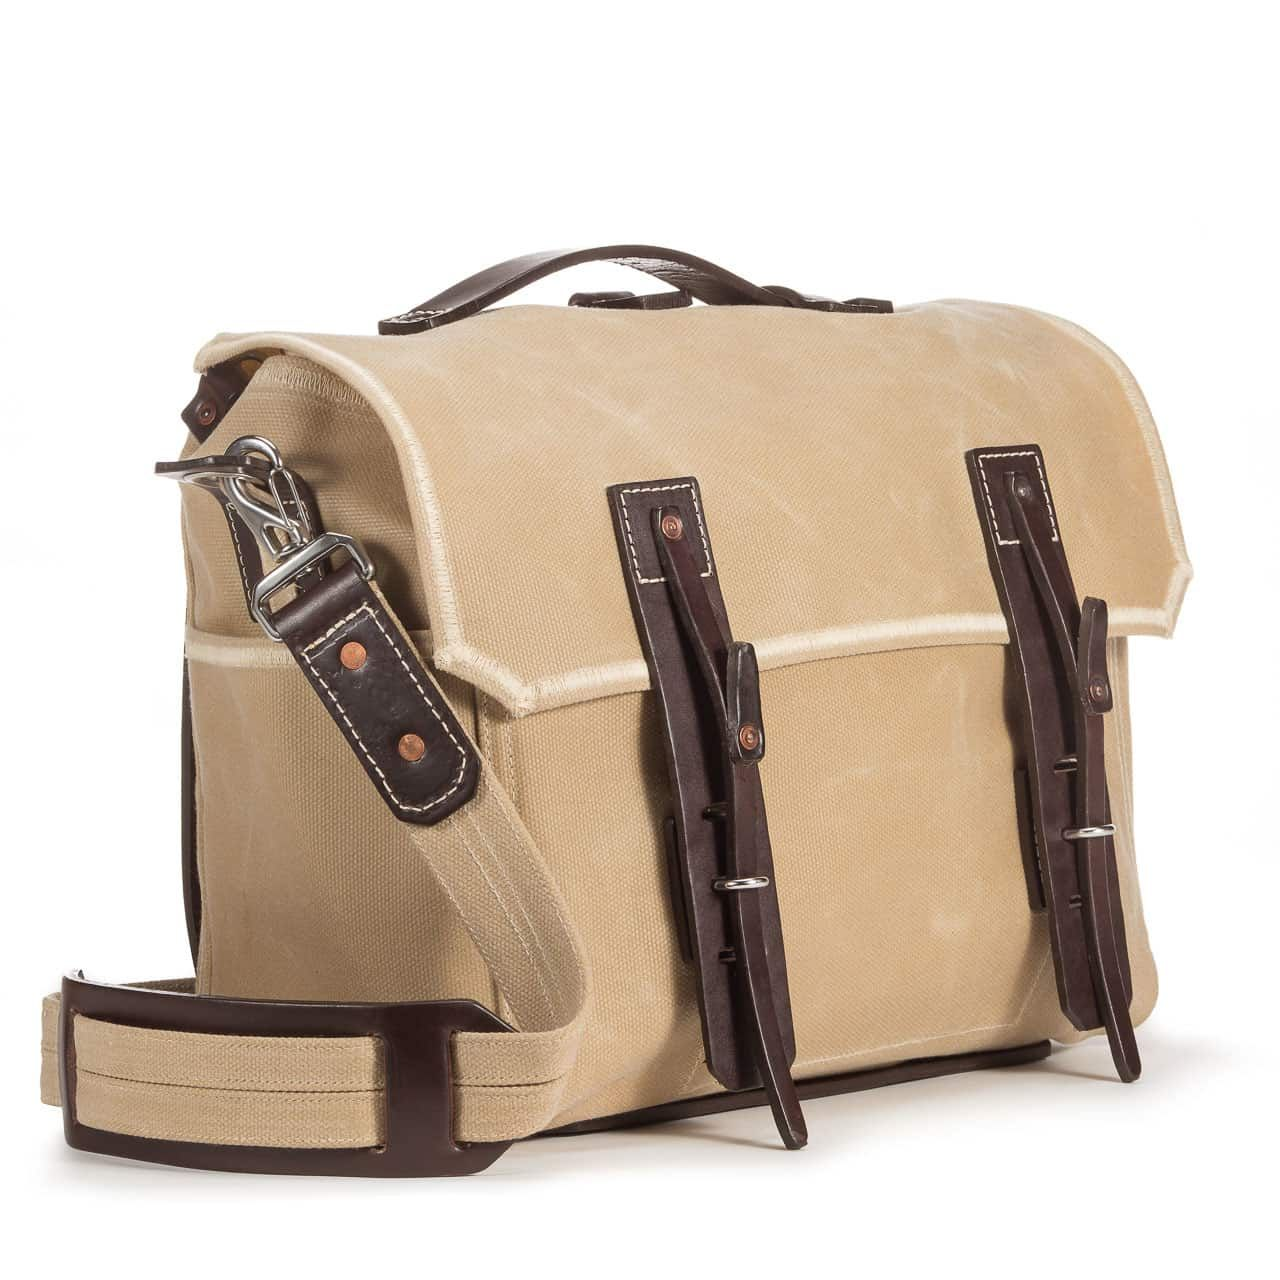 Large Gear Bag in Color Sand Front Angle